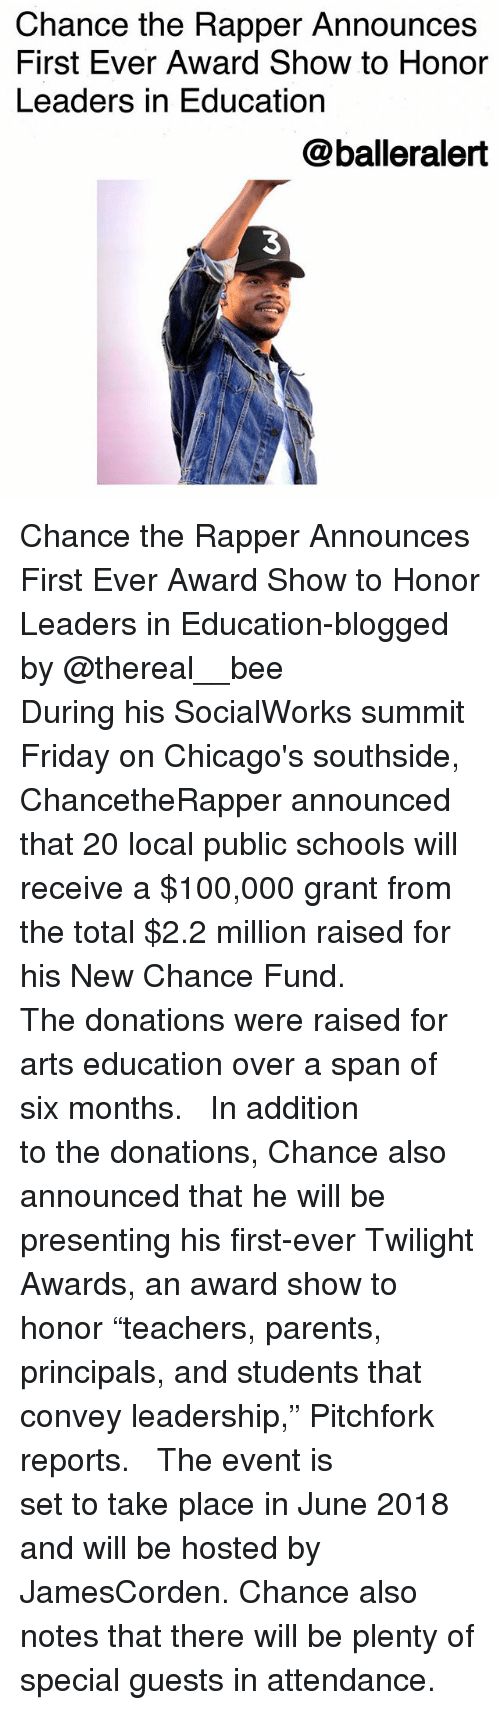 """Anaconda, Chance the Rapper, and Friday: Chance the Rapper Announces  First Ever Award Show to Honor  Leaders in Education  @balleralert  3 Chance the Rapper Announces First Ever Award Show to Honor Leaders in Education-blogged by @thereal__bee ⠀⠀⠀⠀⠀⠀⠀⠀⠀ ⠀⠀ During his SocialWorks summit Friday on Chicago's southside, ChancetheRapper announced that 20 local public schools will receive a $100,000 grant from the total $2.2 million raised for his New Chance Fund. ⠀⠀⠀⠀⠀⠀⠀⠀⠀ ⠀⠀ The donations were raised for arts education over a span of six months. ⠀⠀⠀⠀⠀⠀⠀⠀⠀ ⠀⠀ In addition to the donations, Chance also announced that he will be presenting his first-ever Twilight Awards, an award show to honor """"teachers, parents, principals, and students that convey leadership,"""" Pitchfork reports. ⠀⠀⠀⠀⠀⠀⠀⠀⠀ ⠀⠀ The event is set to take place in June 2018 and will be hosted by JamesCorden. Chance also notes that there will be plenty of special guests in attendance."""